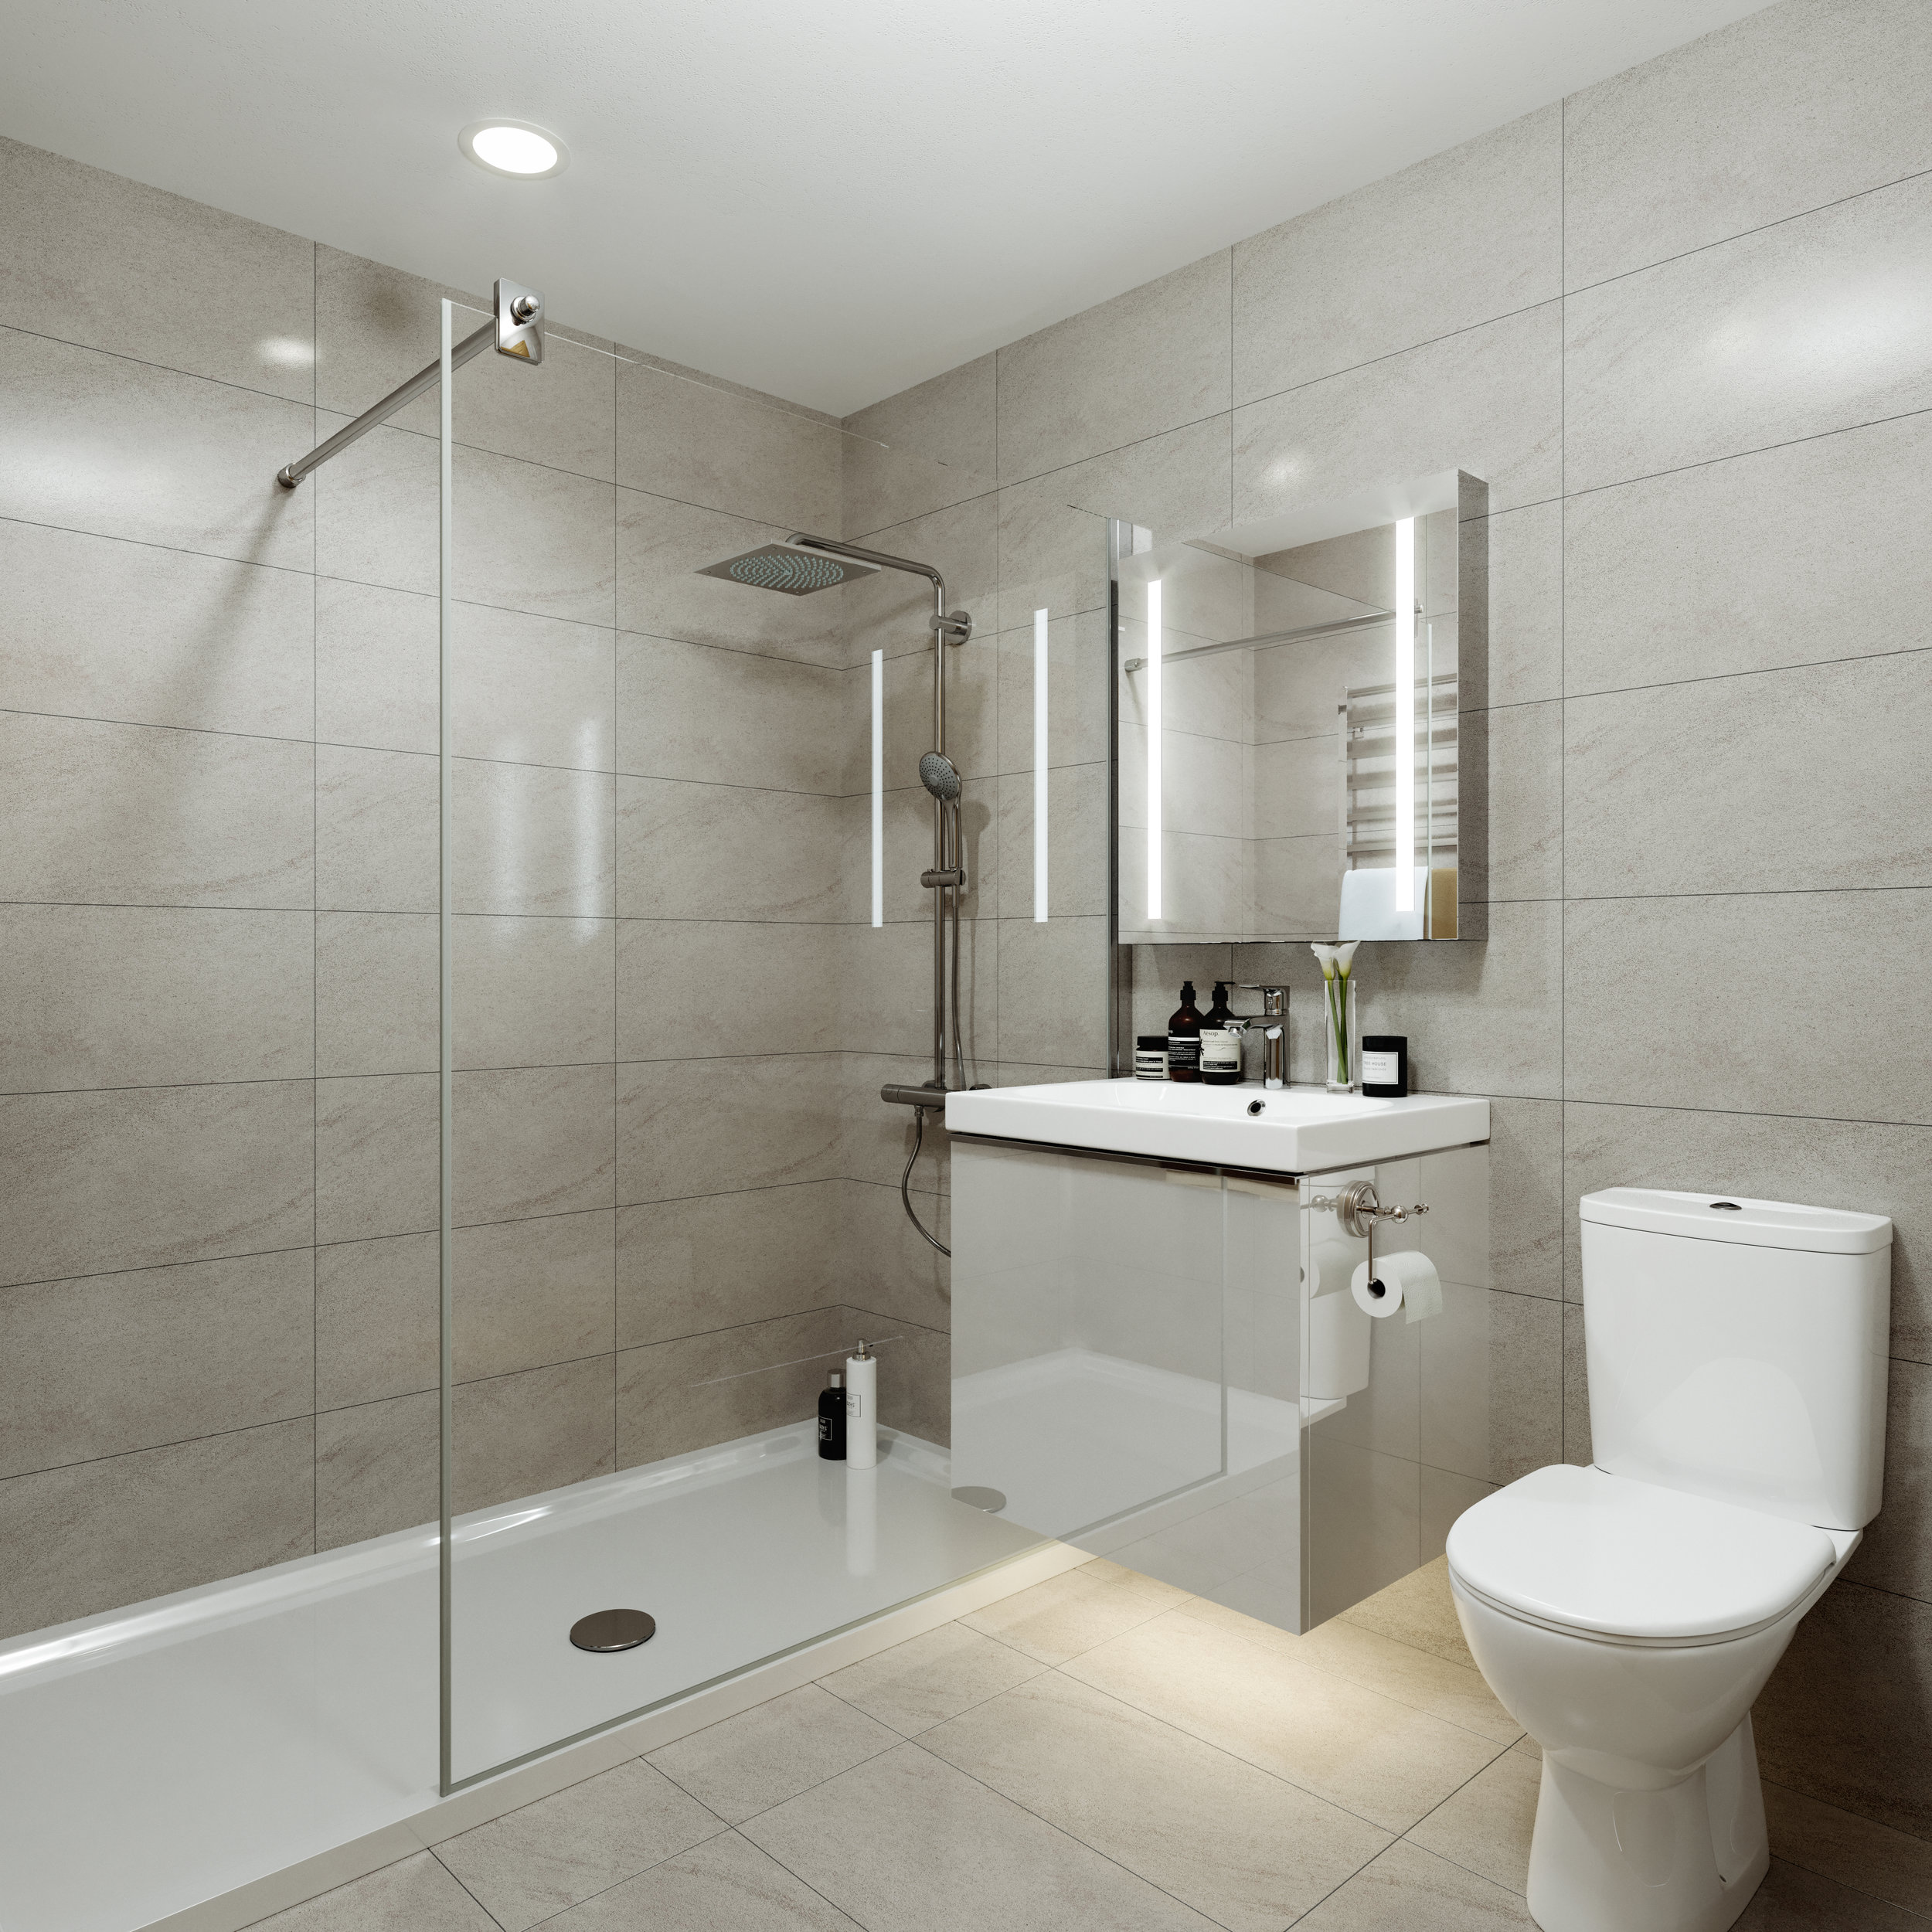 Bathroom_render1.jpg